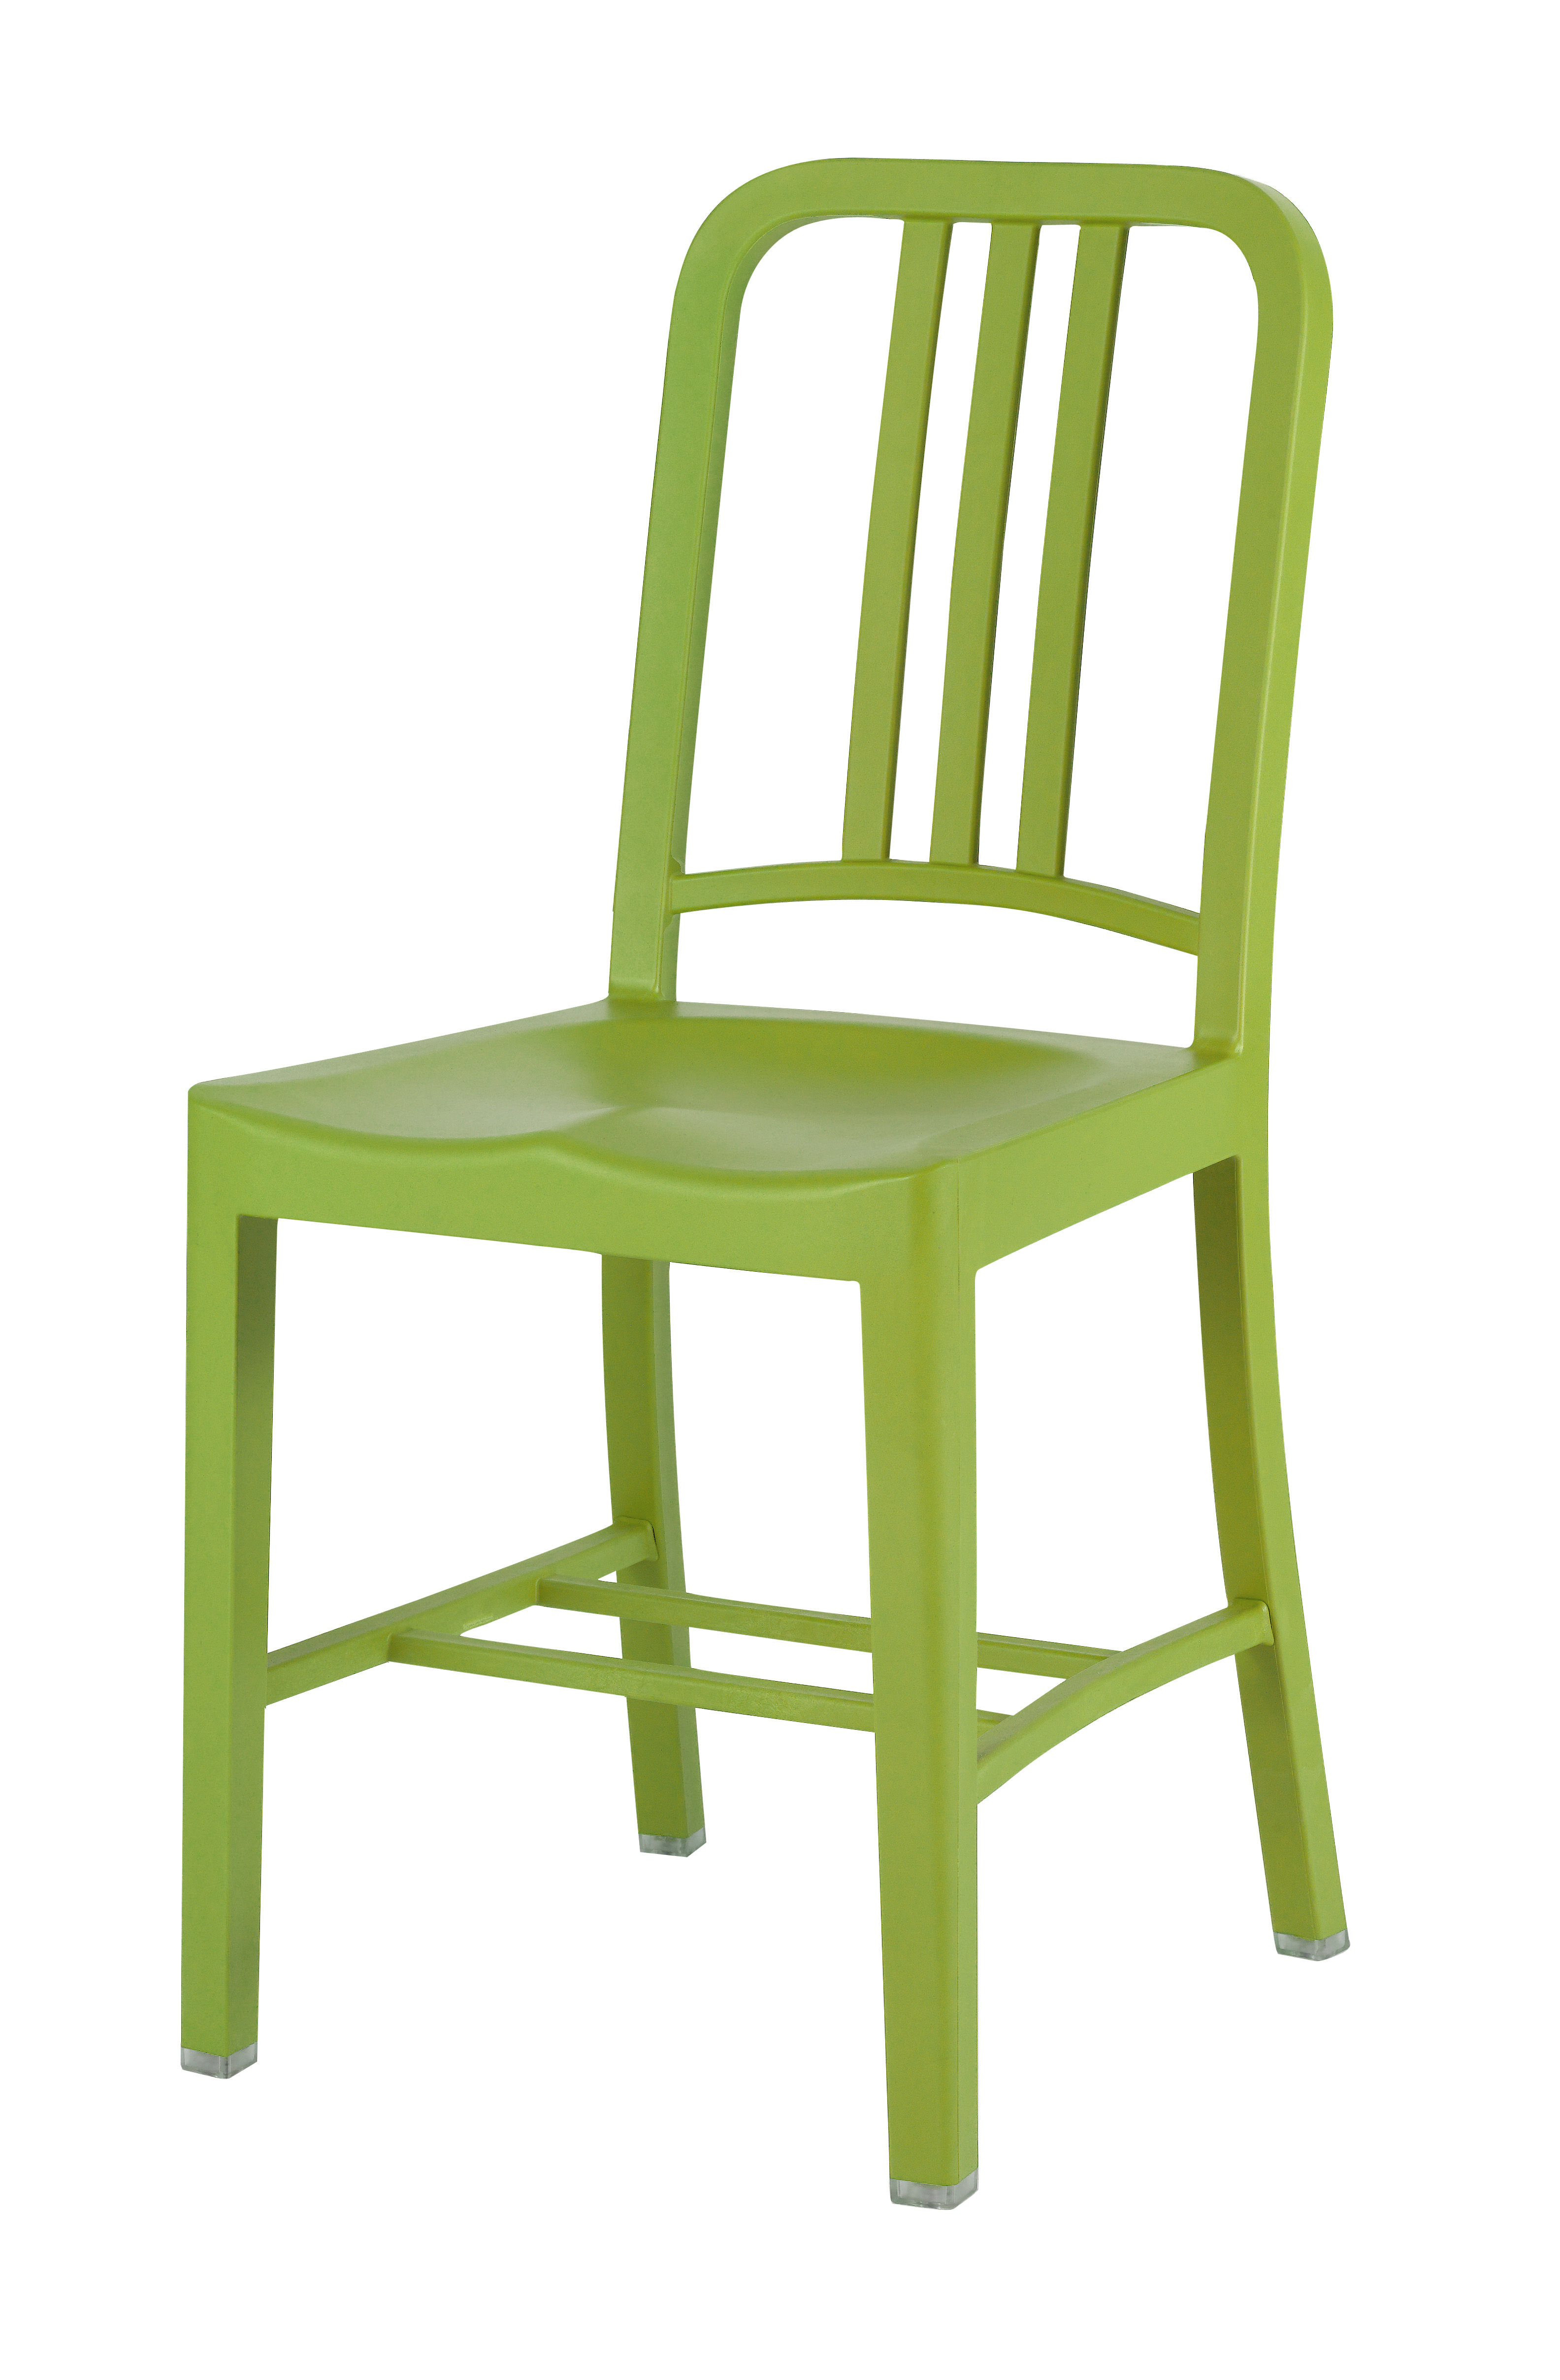 Furniture - Chairs - 111 Navy chair Chair - Recycled plastic by Emeco - Grass green - Fibreglass, PET